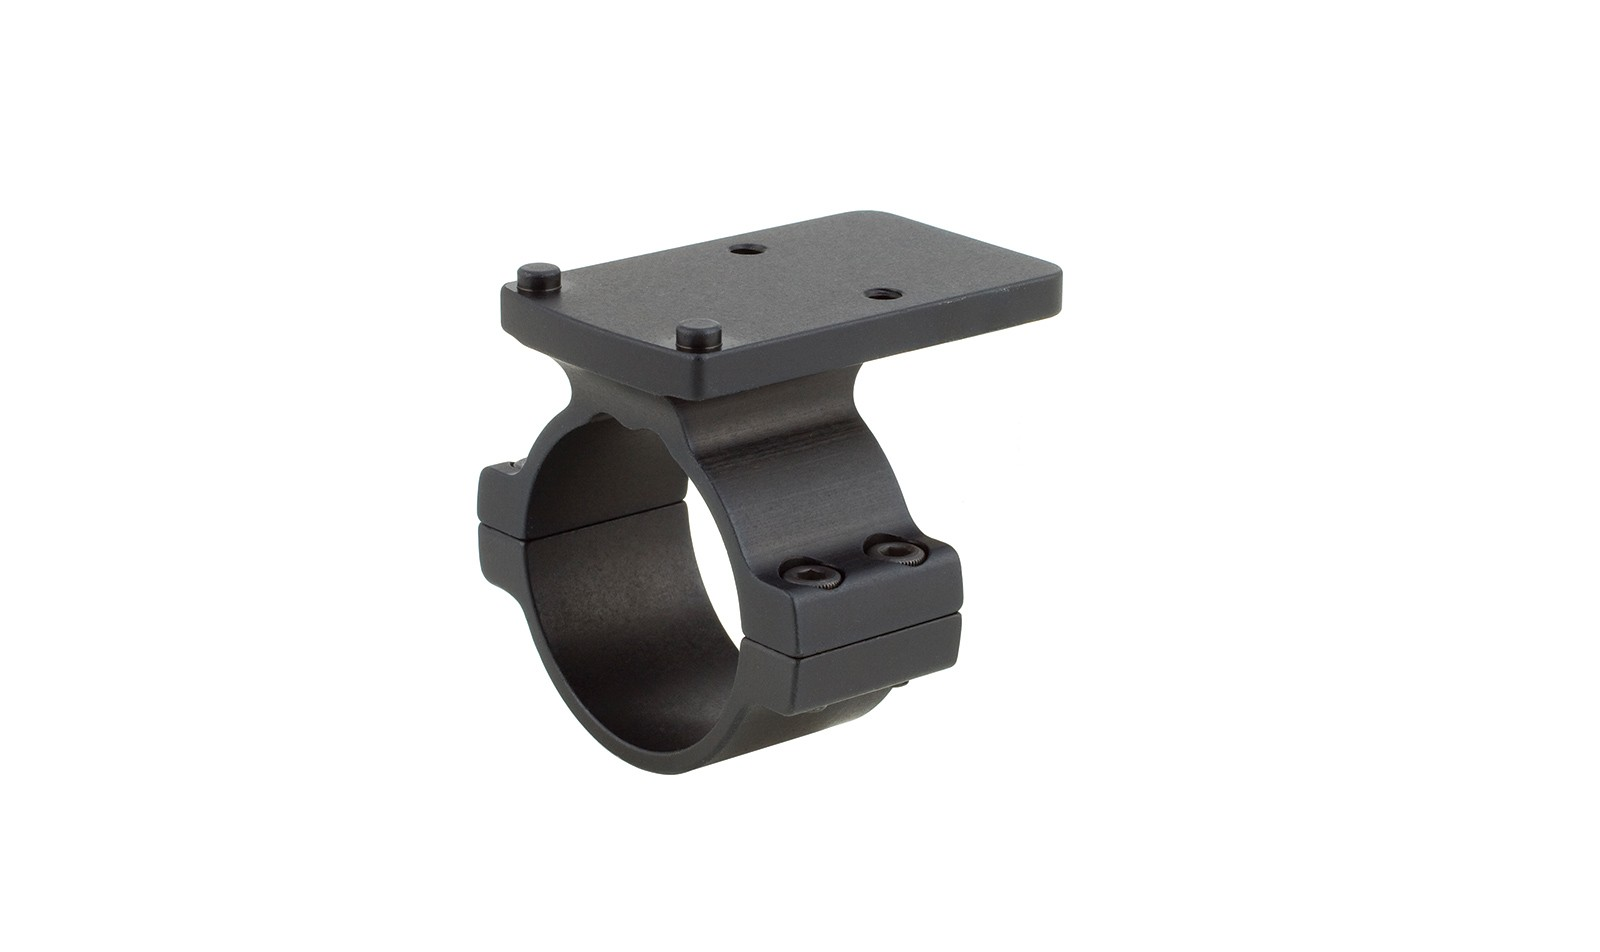 Trijicon RMR<sup>®</sup>/SRO<sup>®</sup> Mounting Adapter for 1-6x24 VCOG<sup>®</sup>